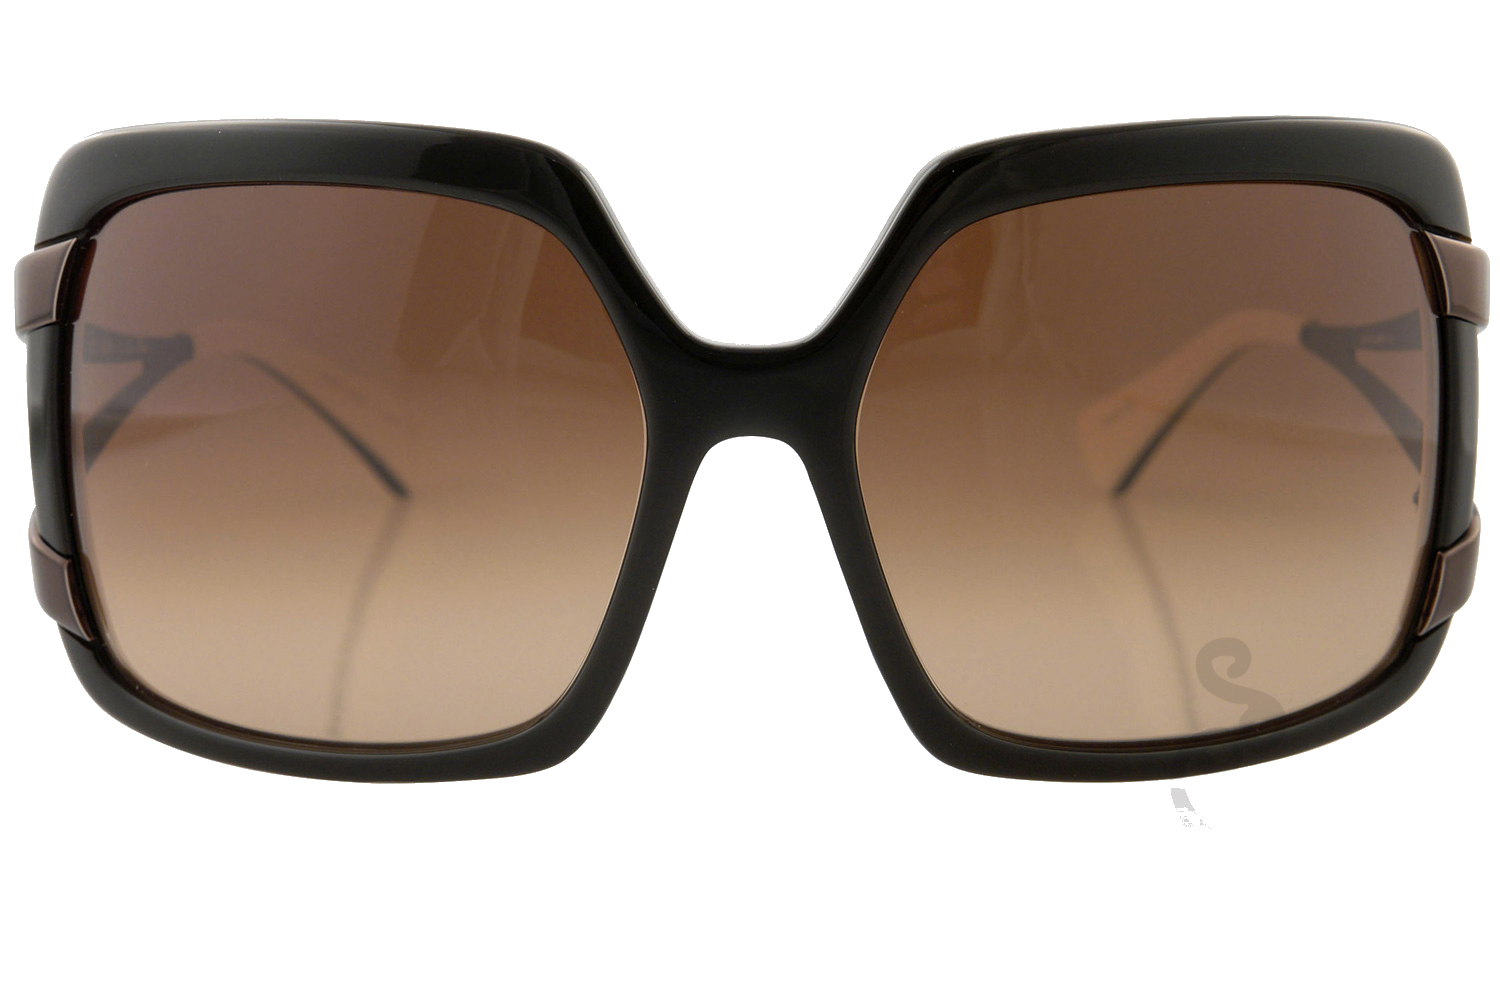 Sunglasses png transparent images. Goggles clipart stylish